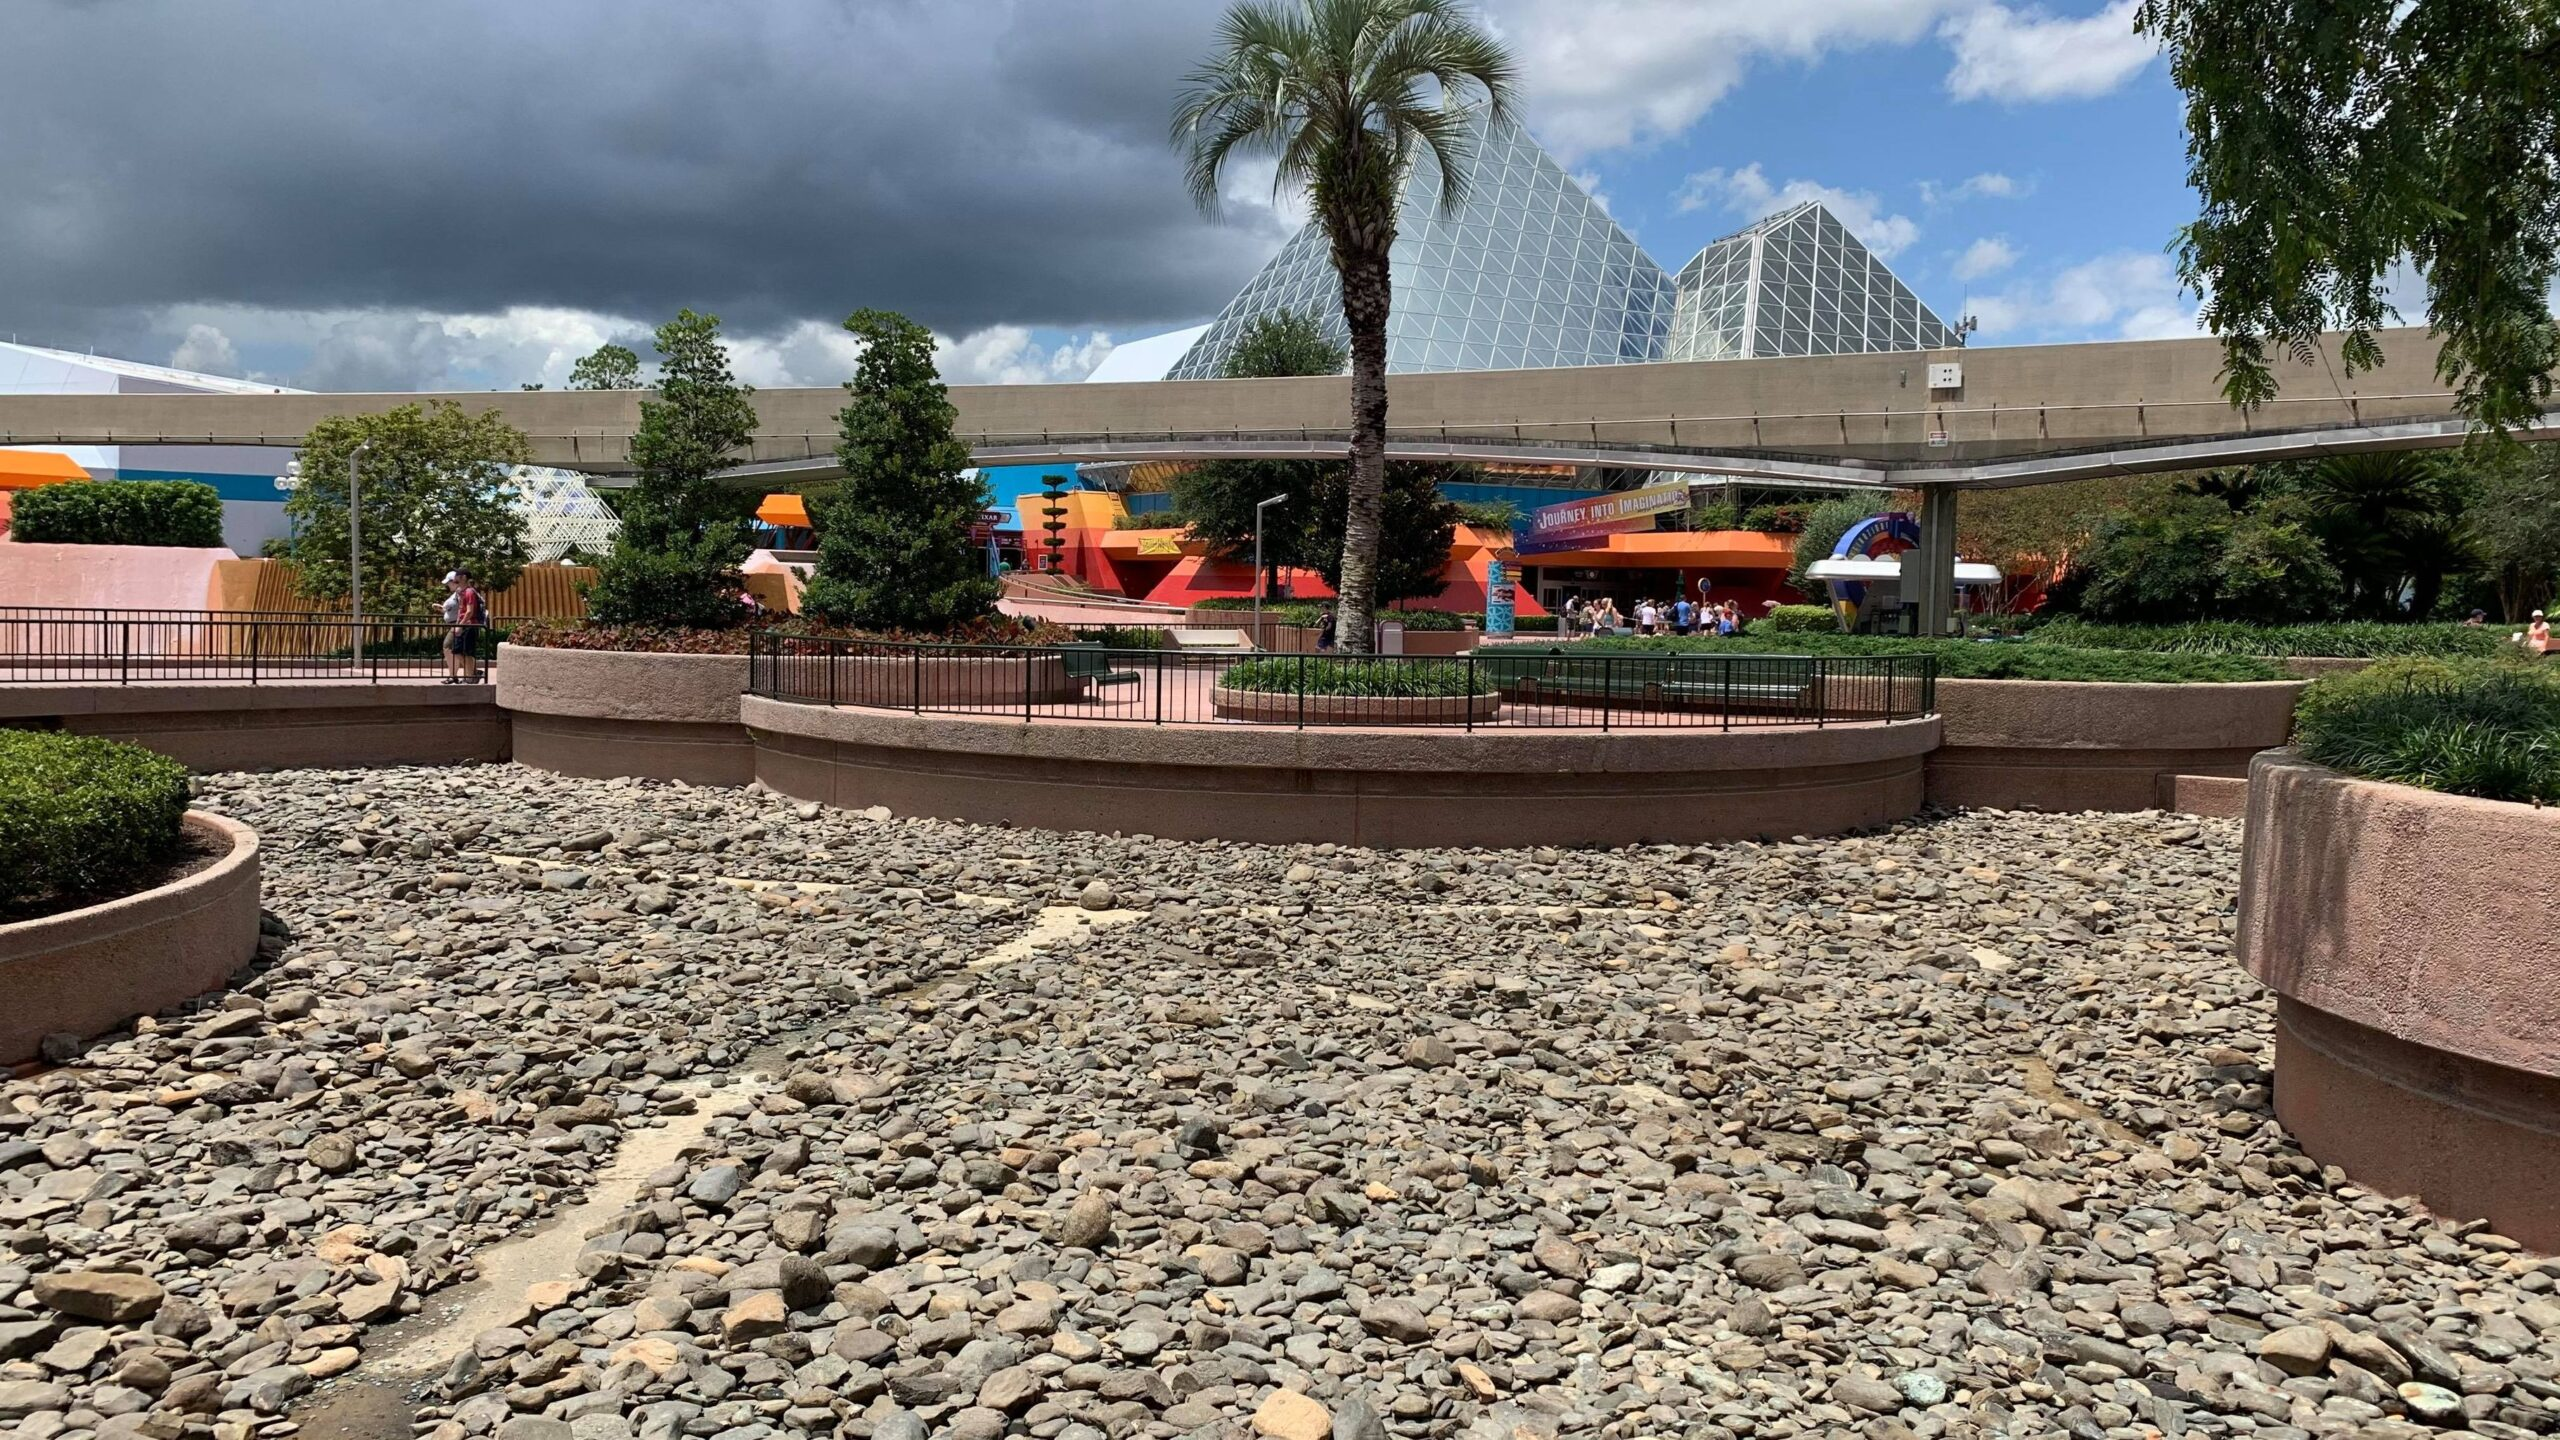 Epcot draining ponds as they prepare for Moana's Journey of Water 3